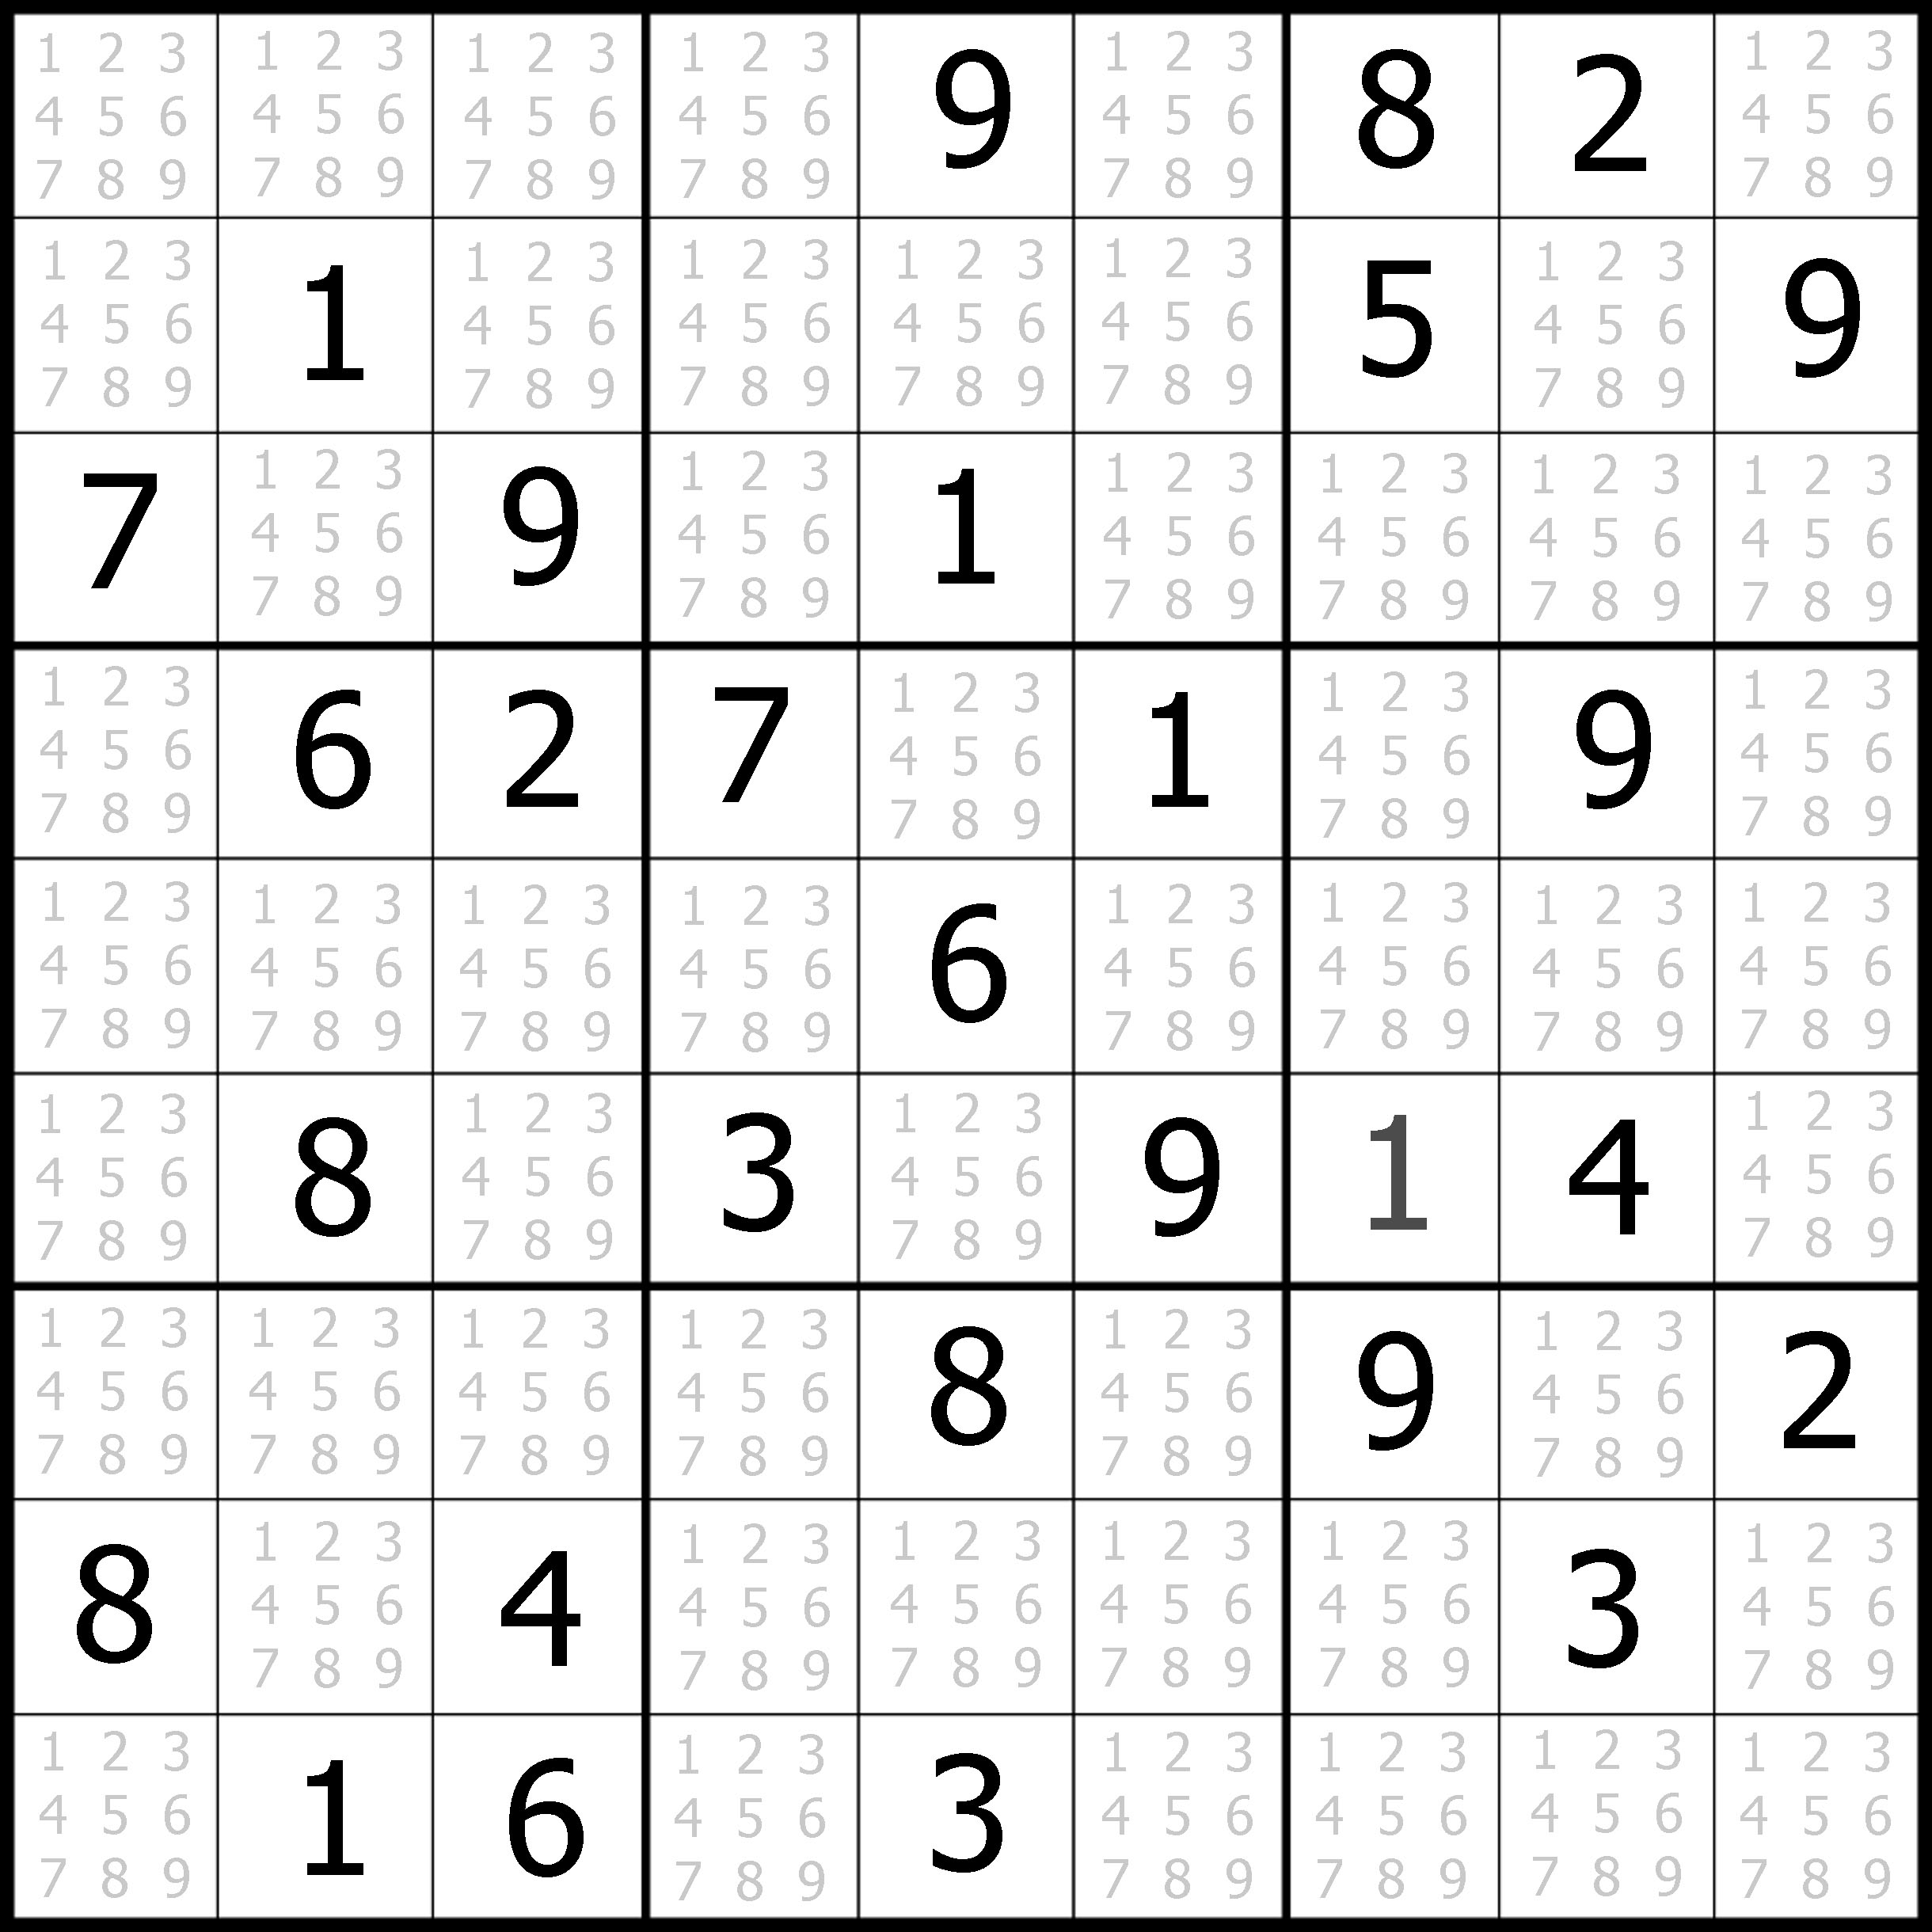 Sudoku Puzzler | Free, Printable, Updated Sudoku Puzzles With A - Printable Sudoku Puzzles Medium